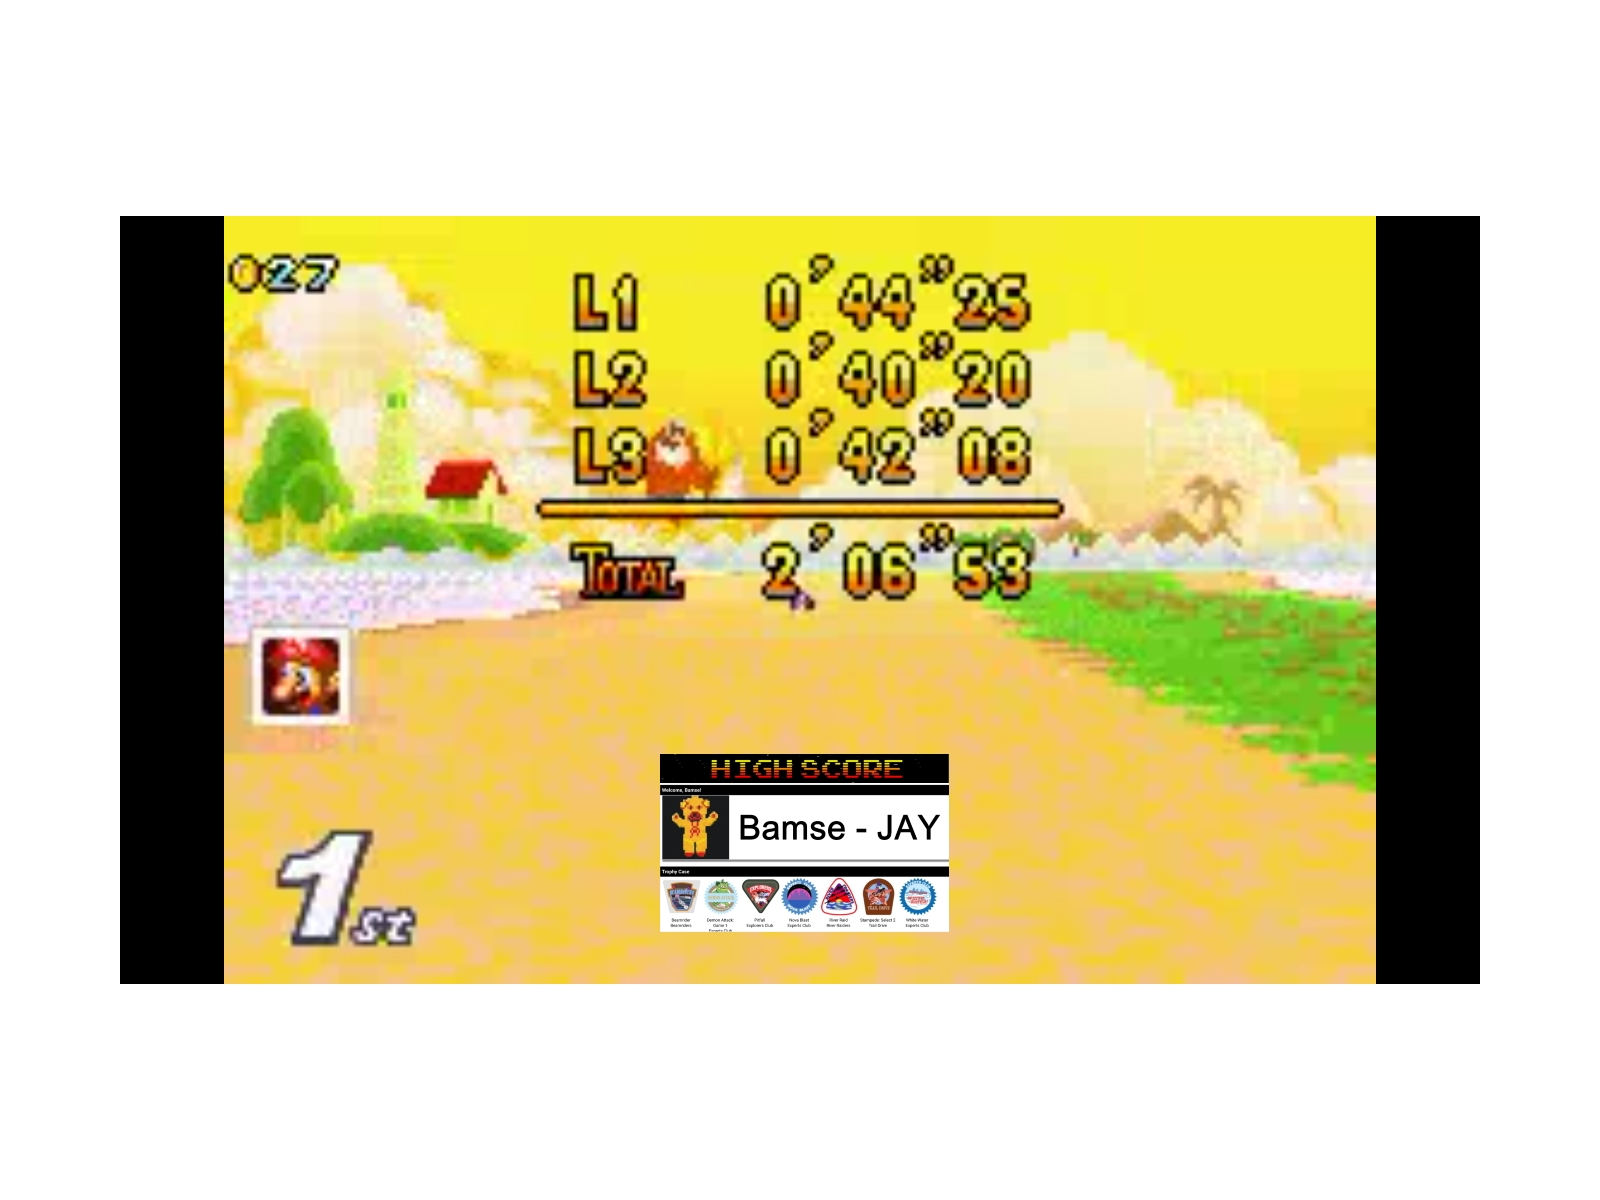 Bamse: Mario Kart Super Circuit: Cheep Cheep Island [50cc] (GBA Emulated) 0:02:06.53 points on 2019-12-17 13:13:01